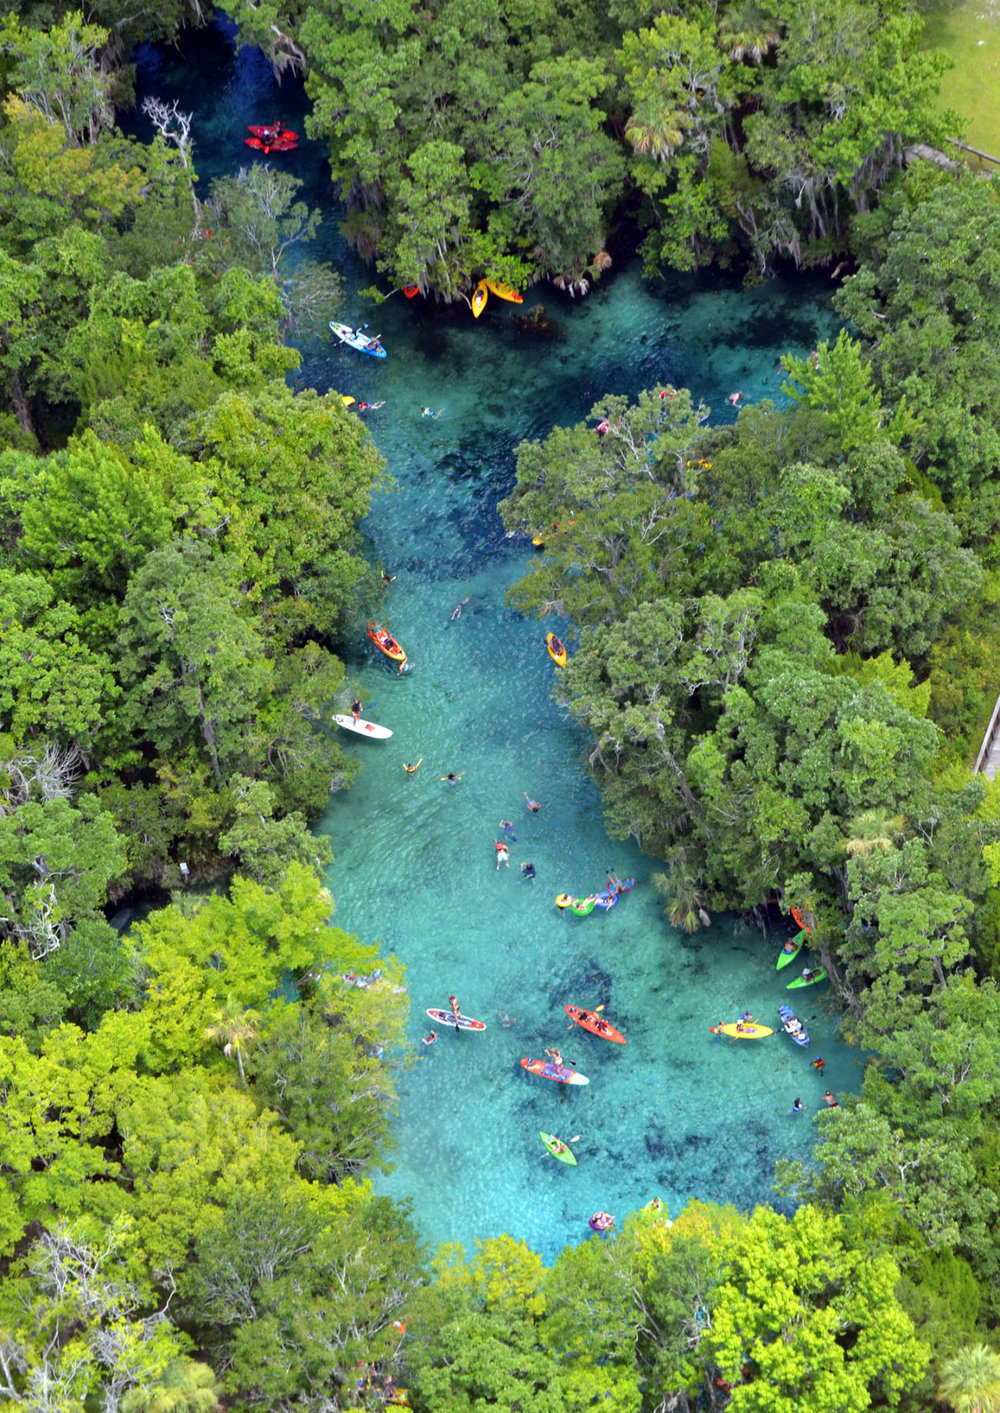 Three Sisters Springs - Summer Photo by Matt Beck, photo editor at the Citrus County Chronicle.